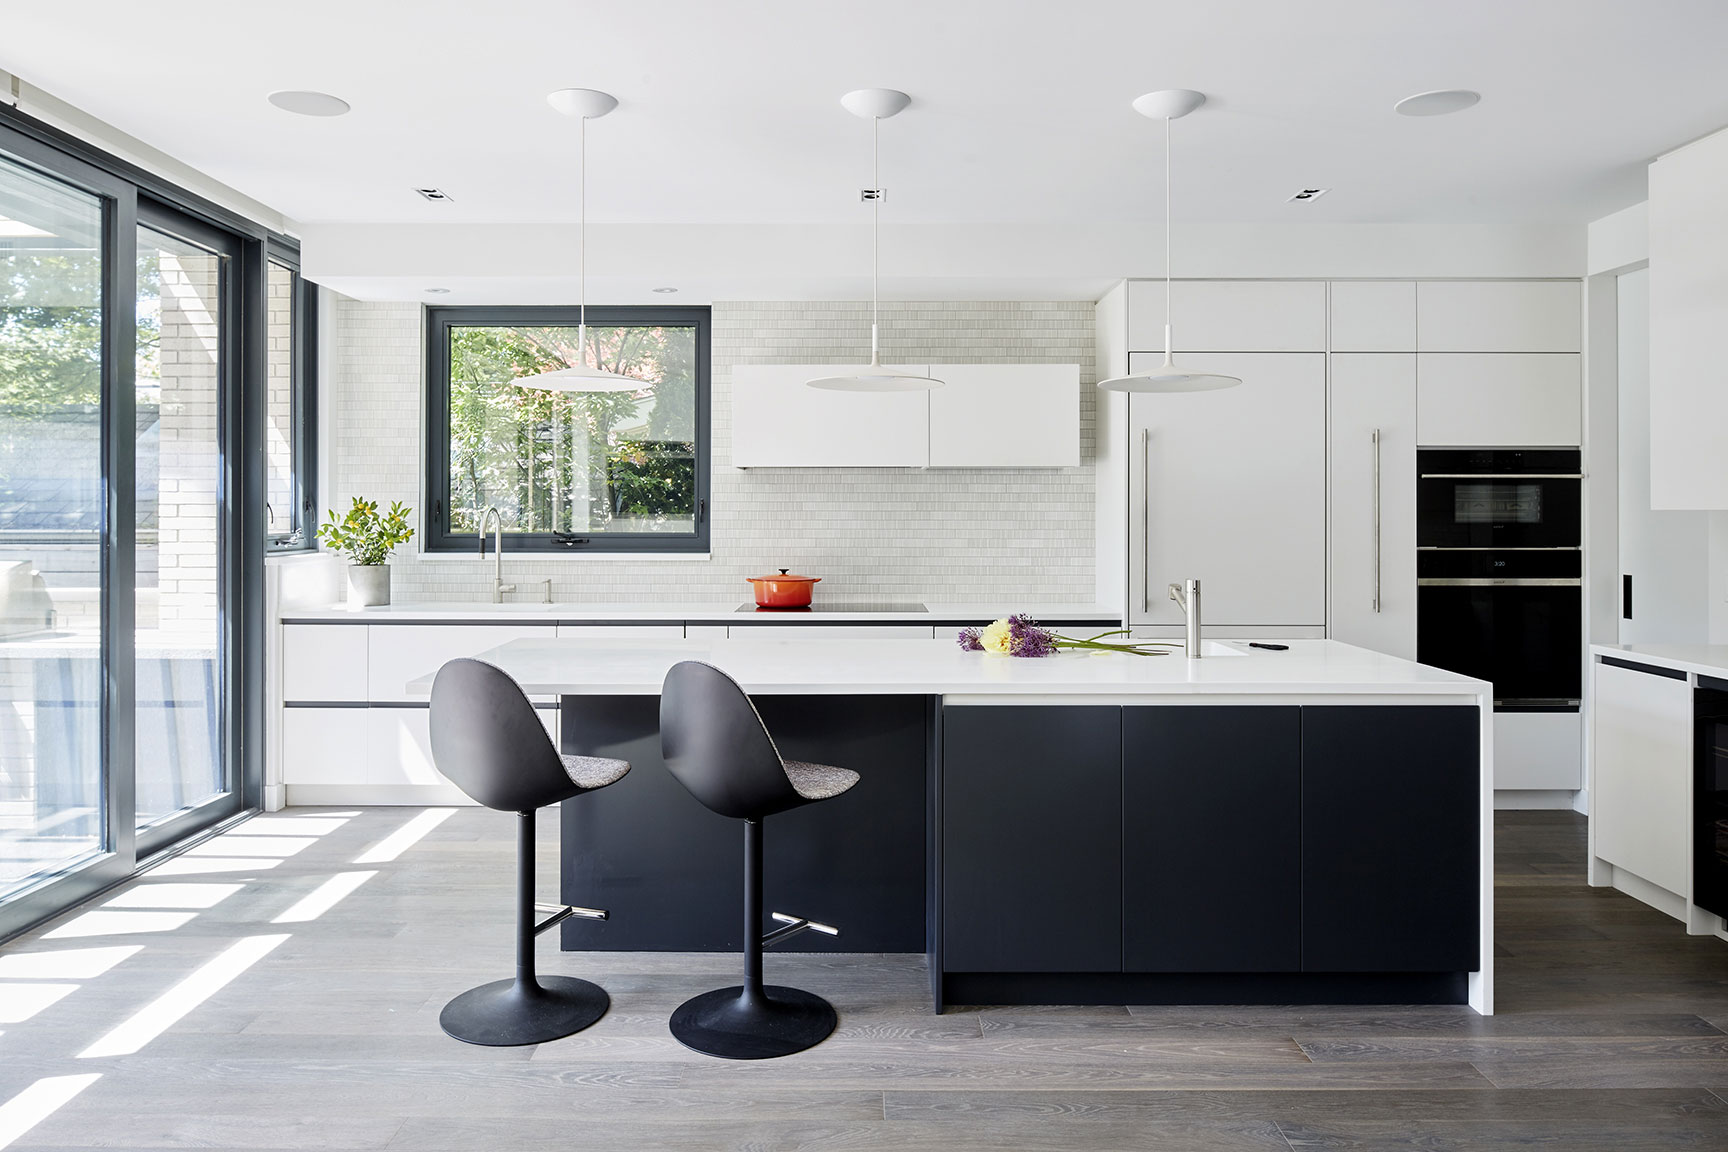 Architecture-interior-design-toronto-photographer-modern-kitchen